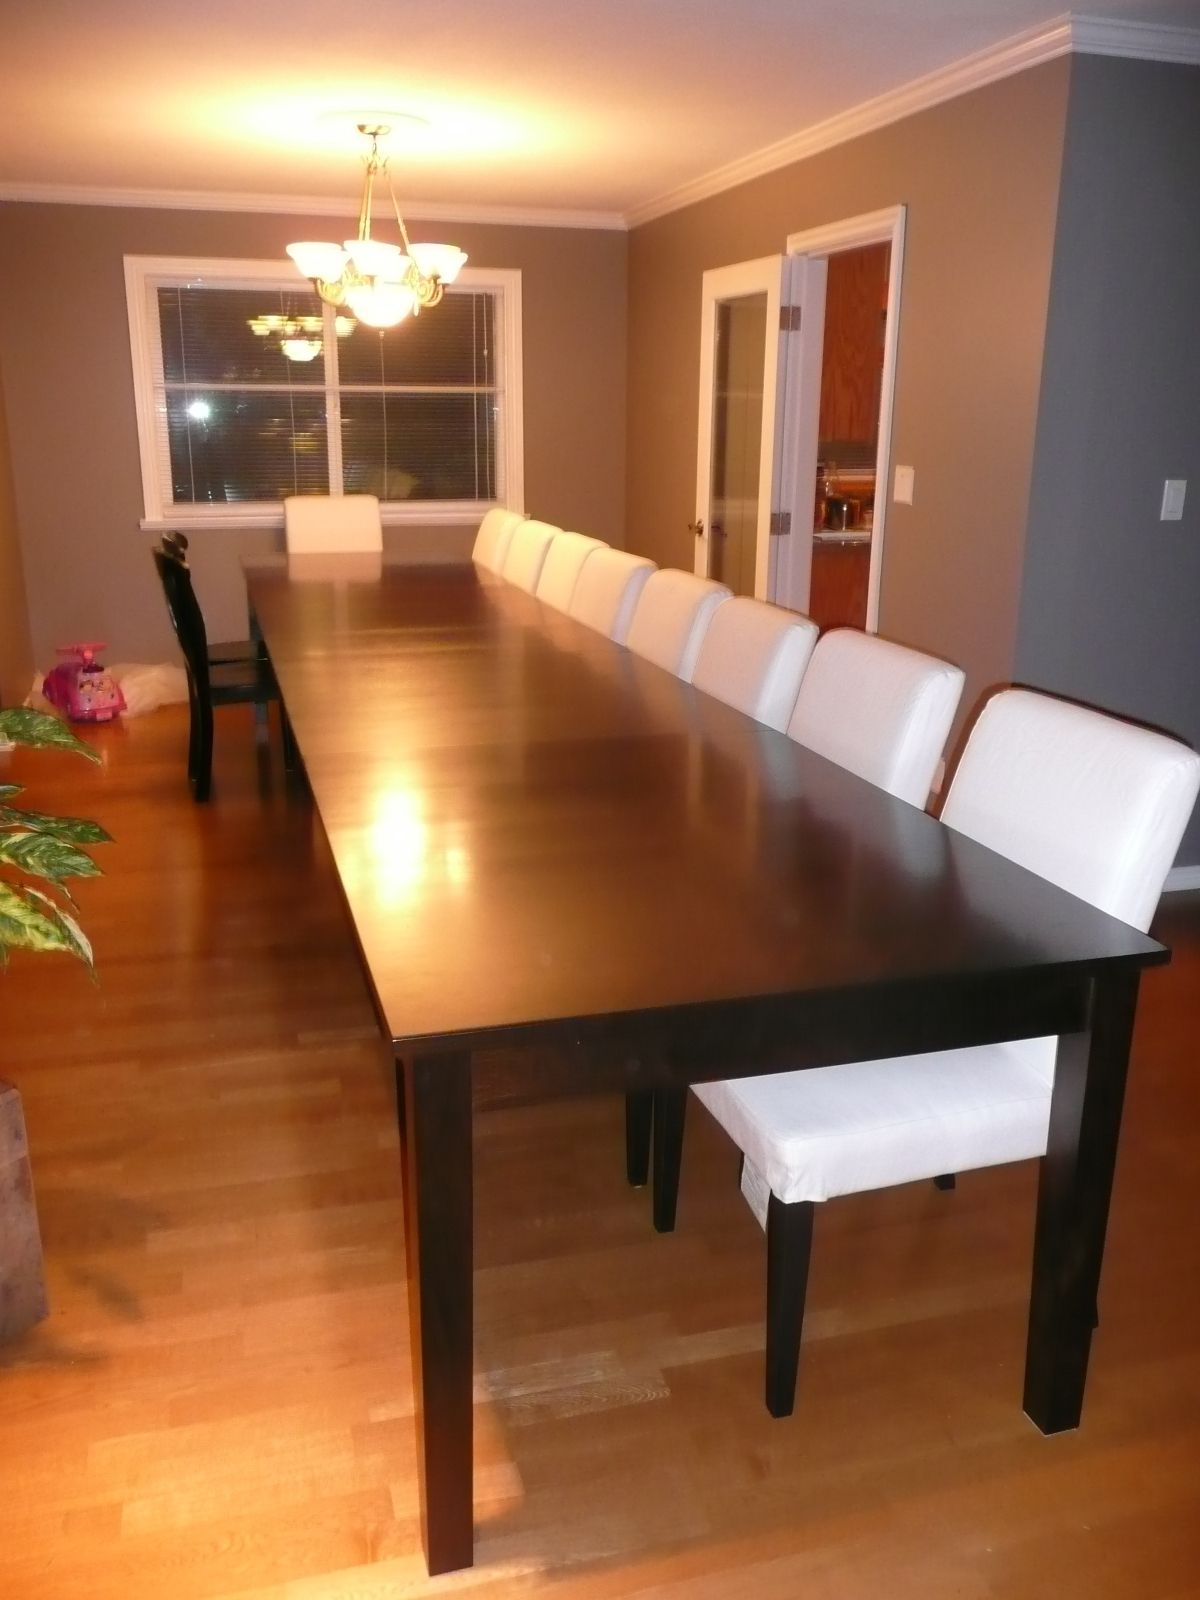 16 Foot Table Modern Table Design Dining Room Table Dining Table